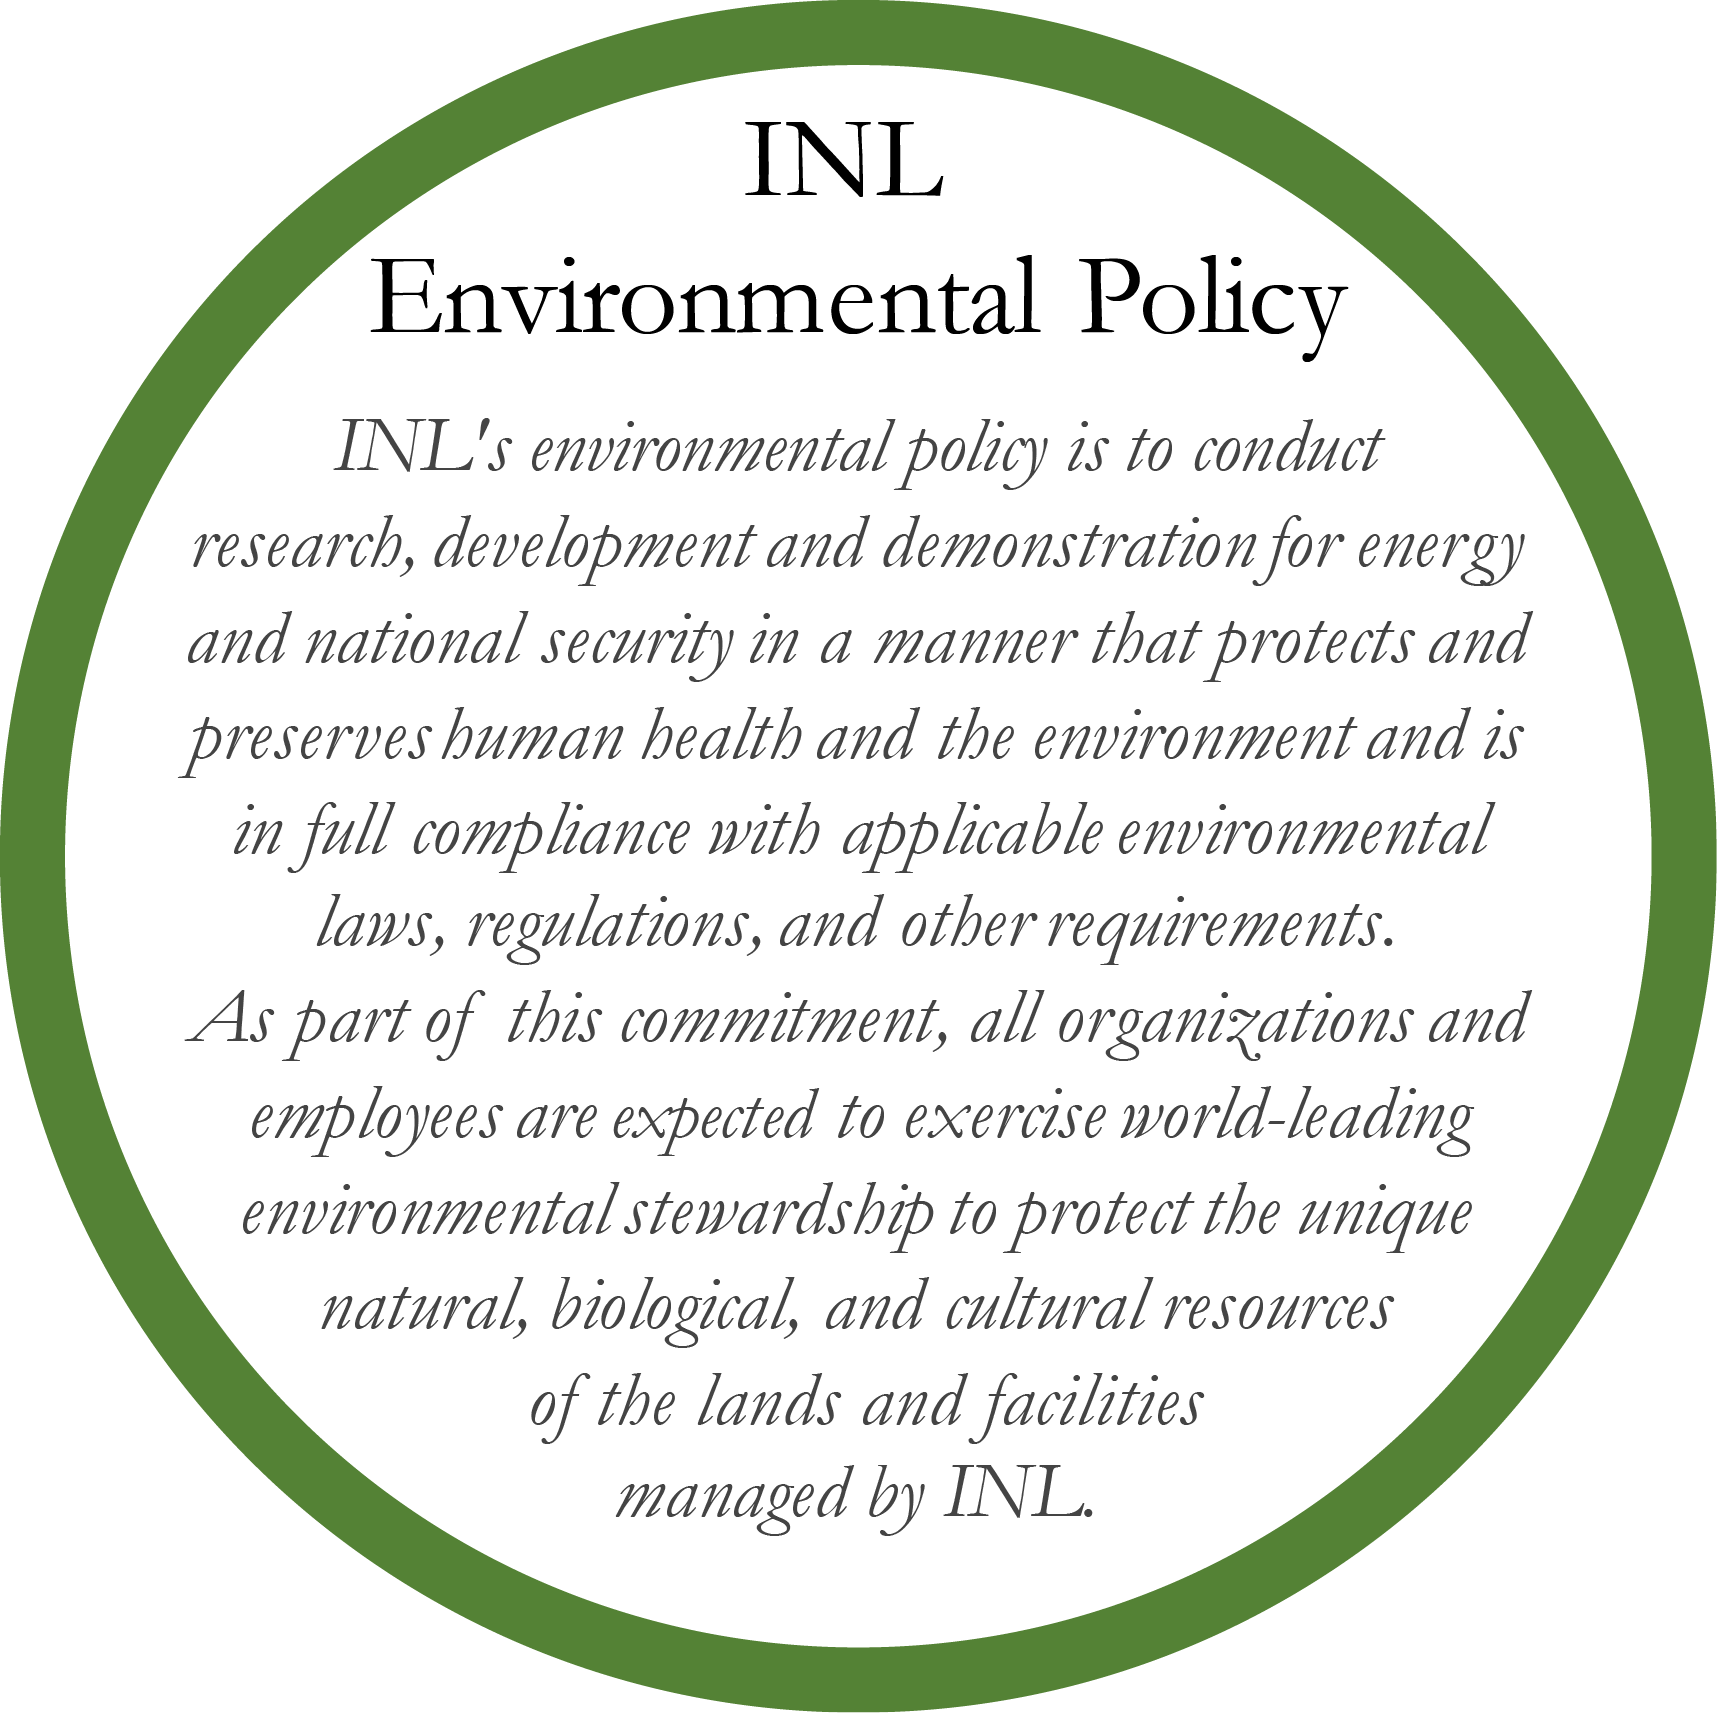 Env_Policy-02 (4).png